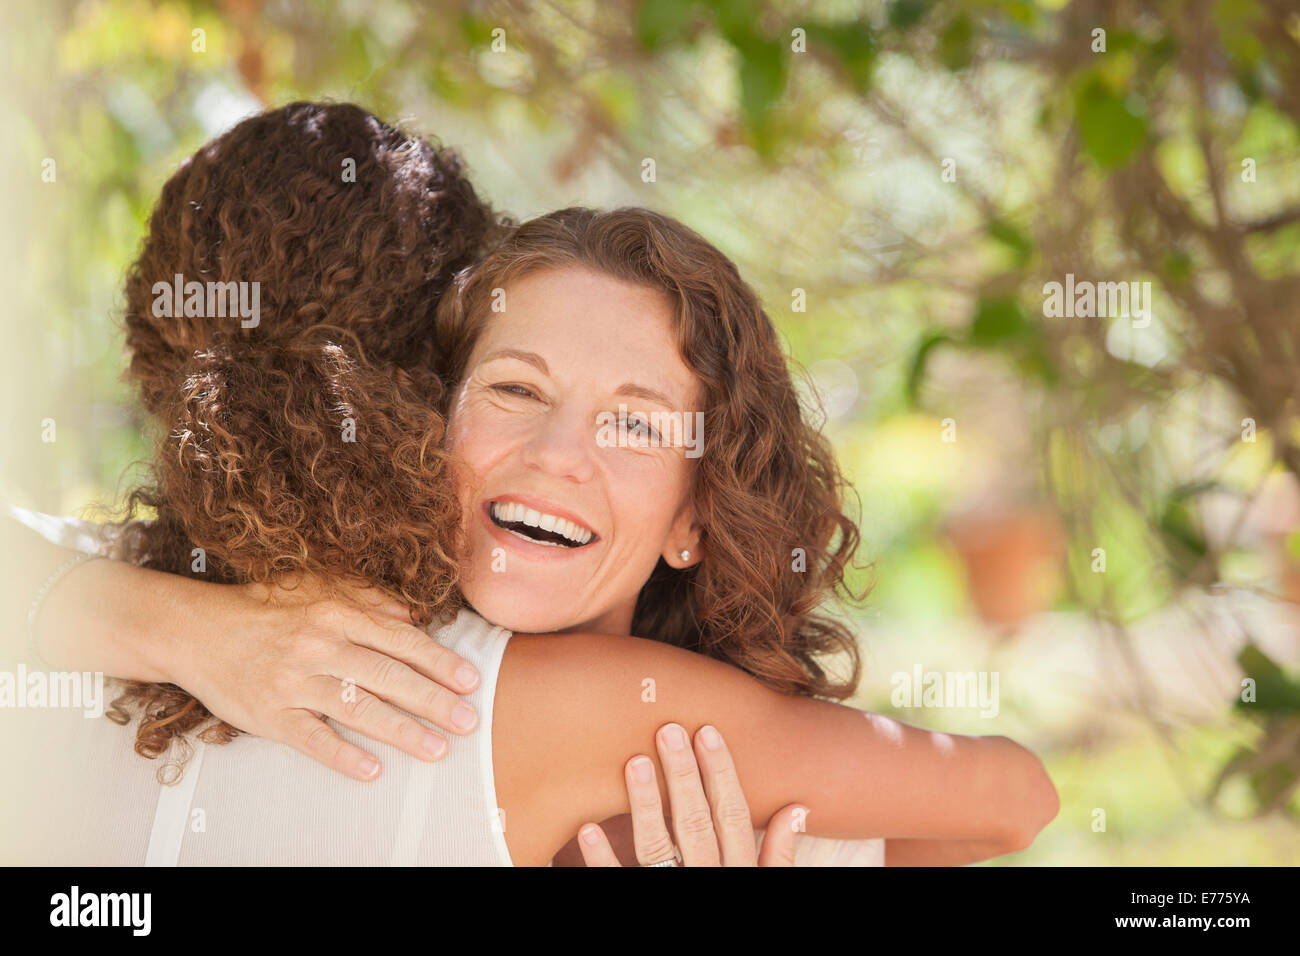 Mother and daughter hugging outdoors - Stock Image